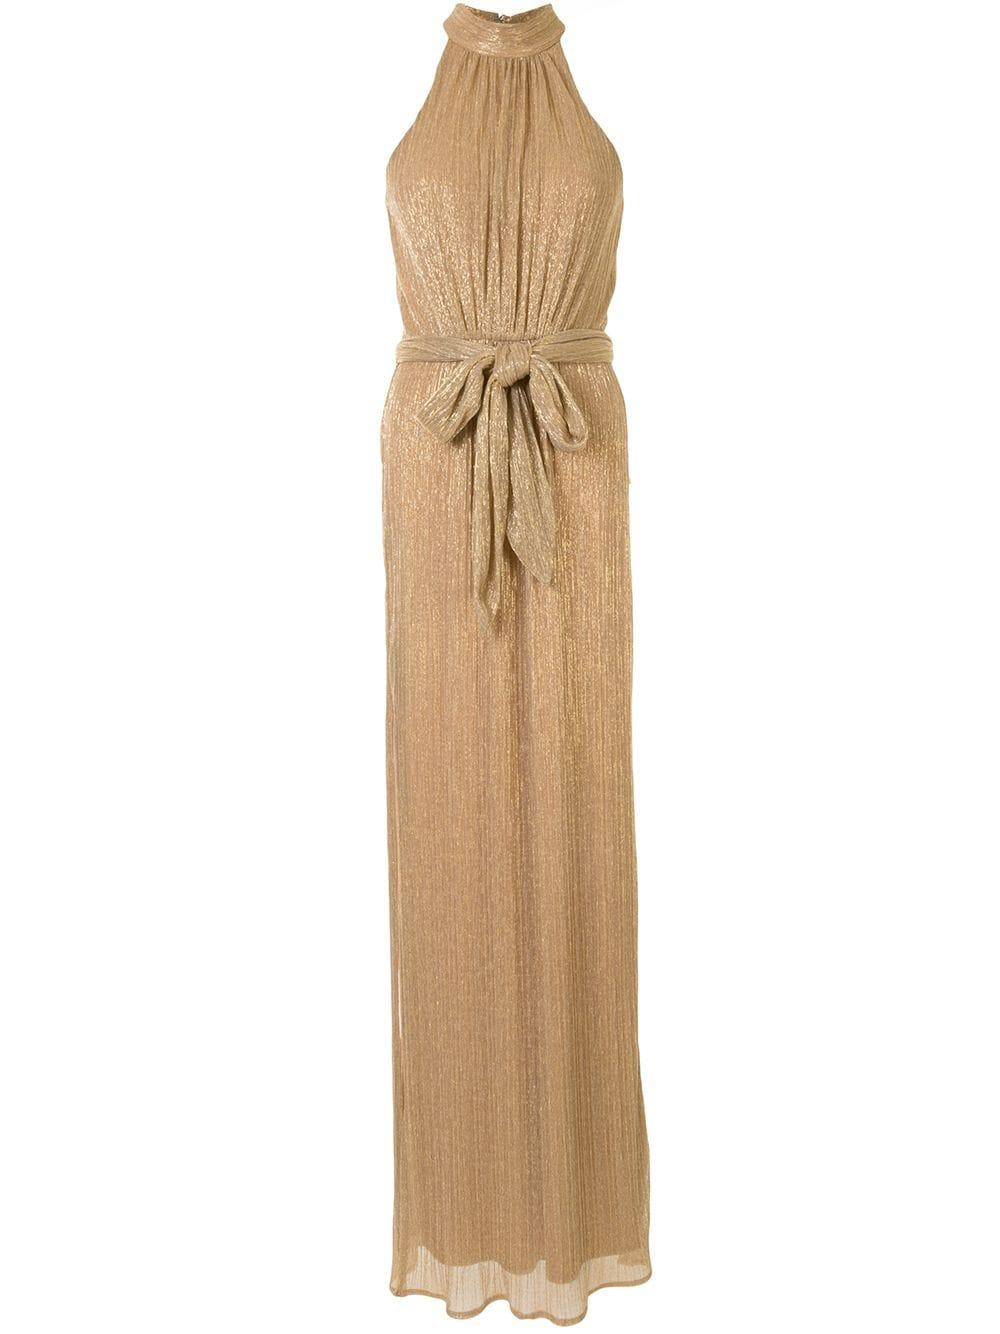 Ruched Metallic Halter Gown Item # 1011011